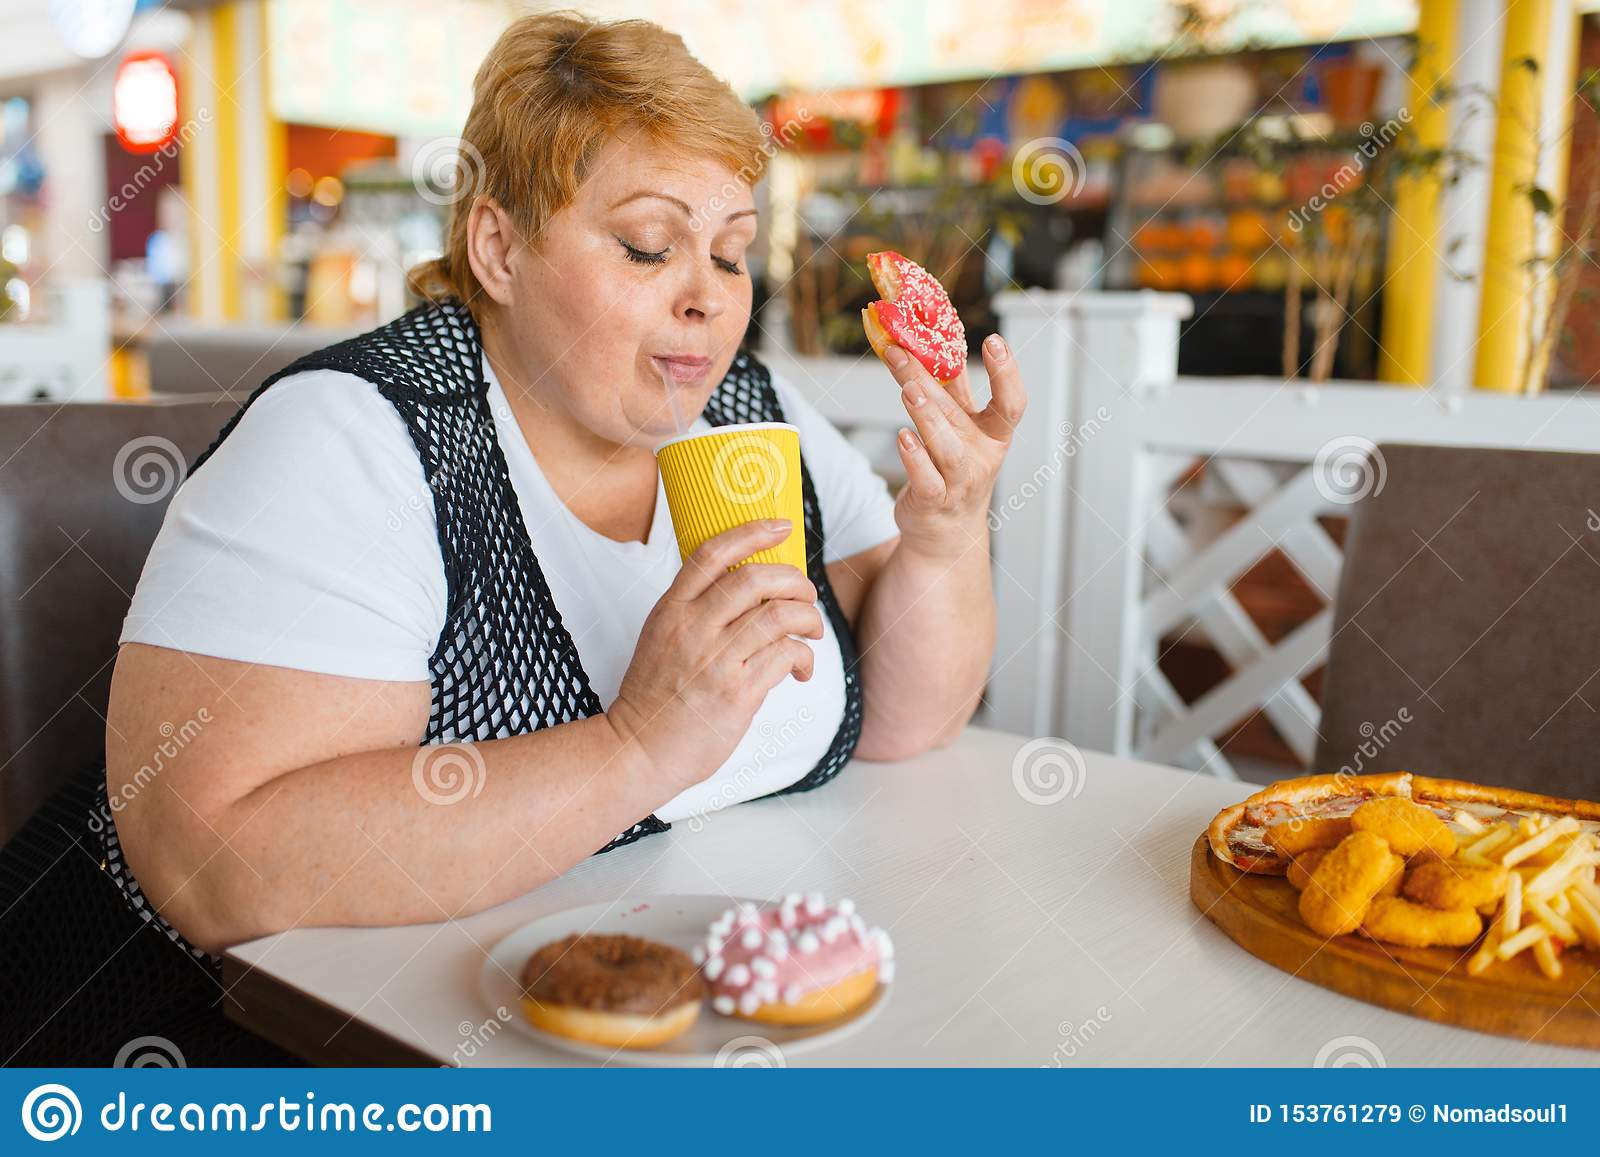 donuts eating Fat woman